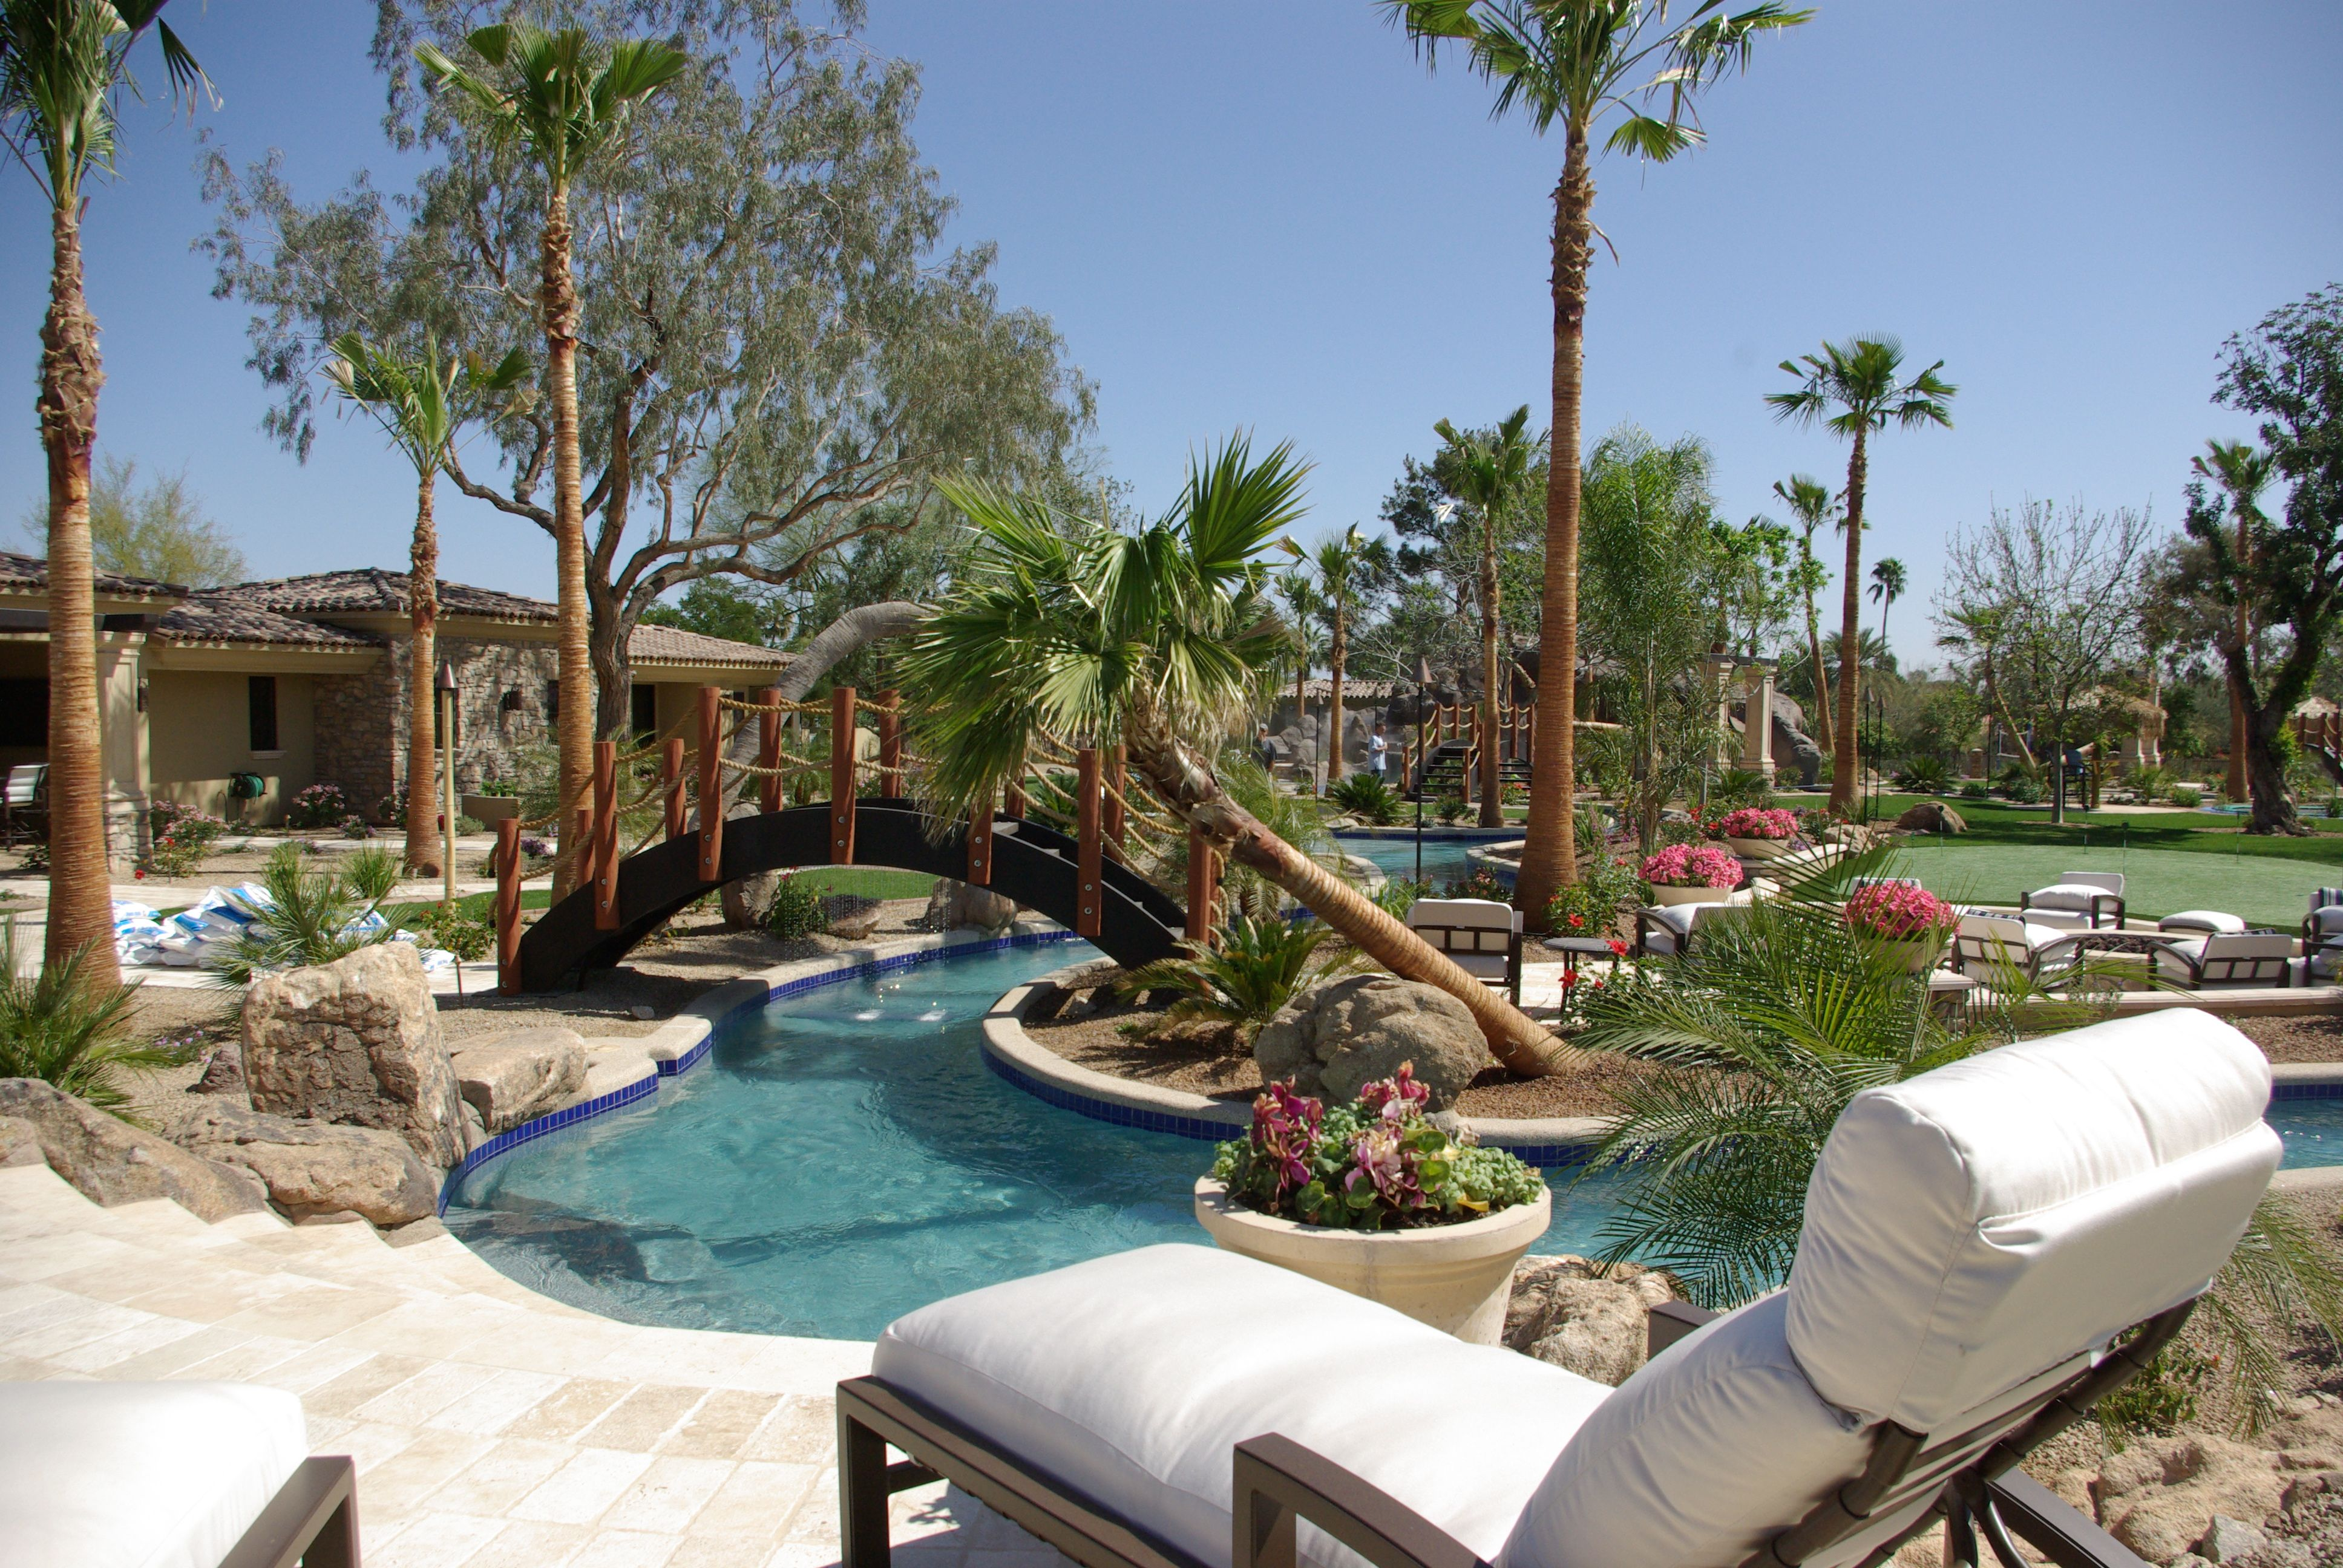 Luxury Lazy River Designed And Built By Mossman Brothers Pools In Scottsdale Az The Current In The Lazy River Is P Backyard Pool Indoor Outdoor Pool Swim Spa